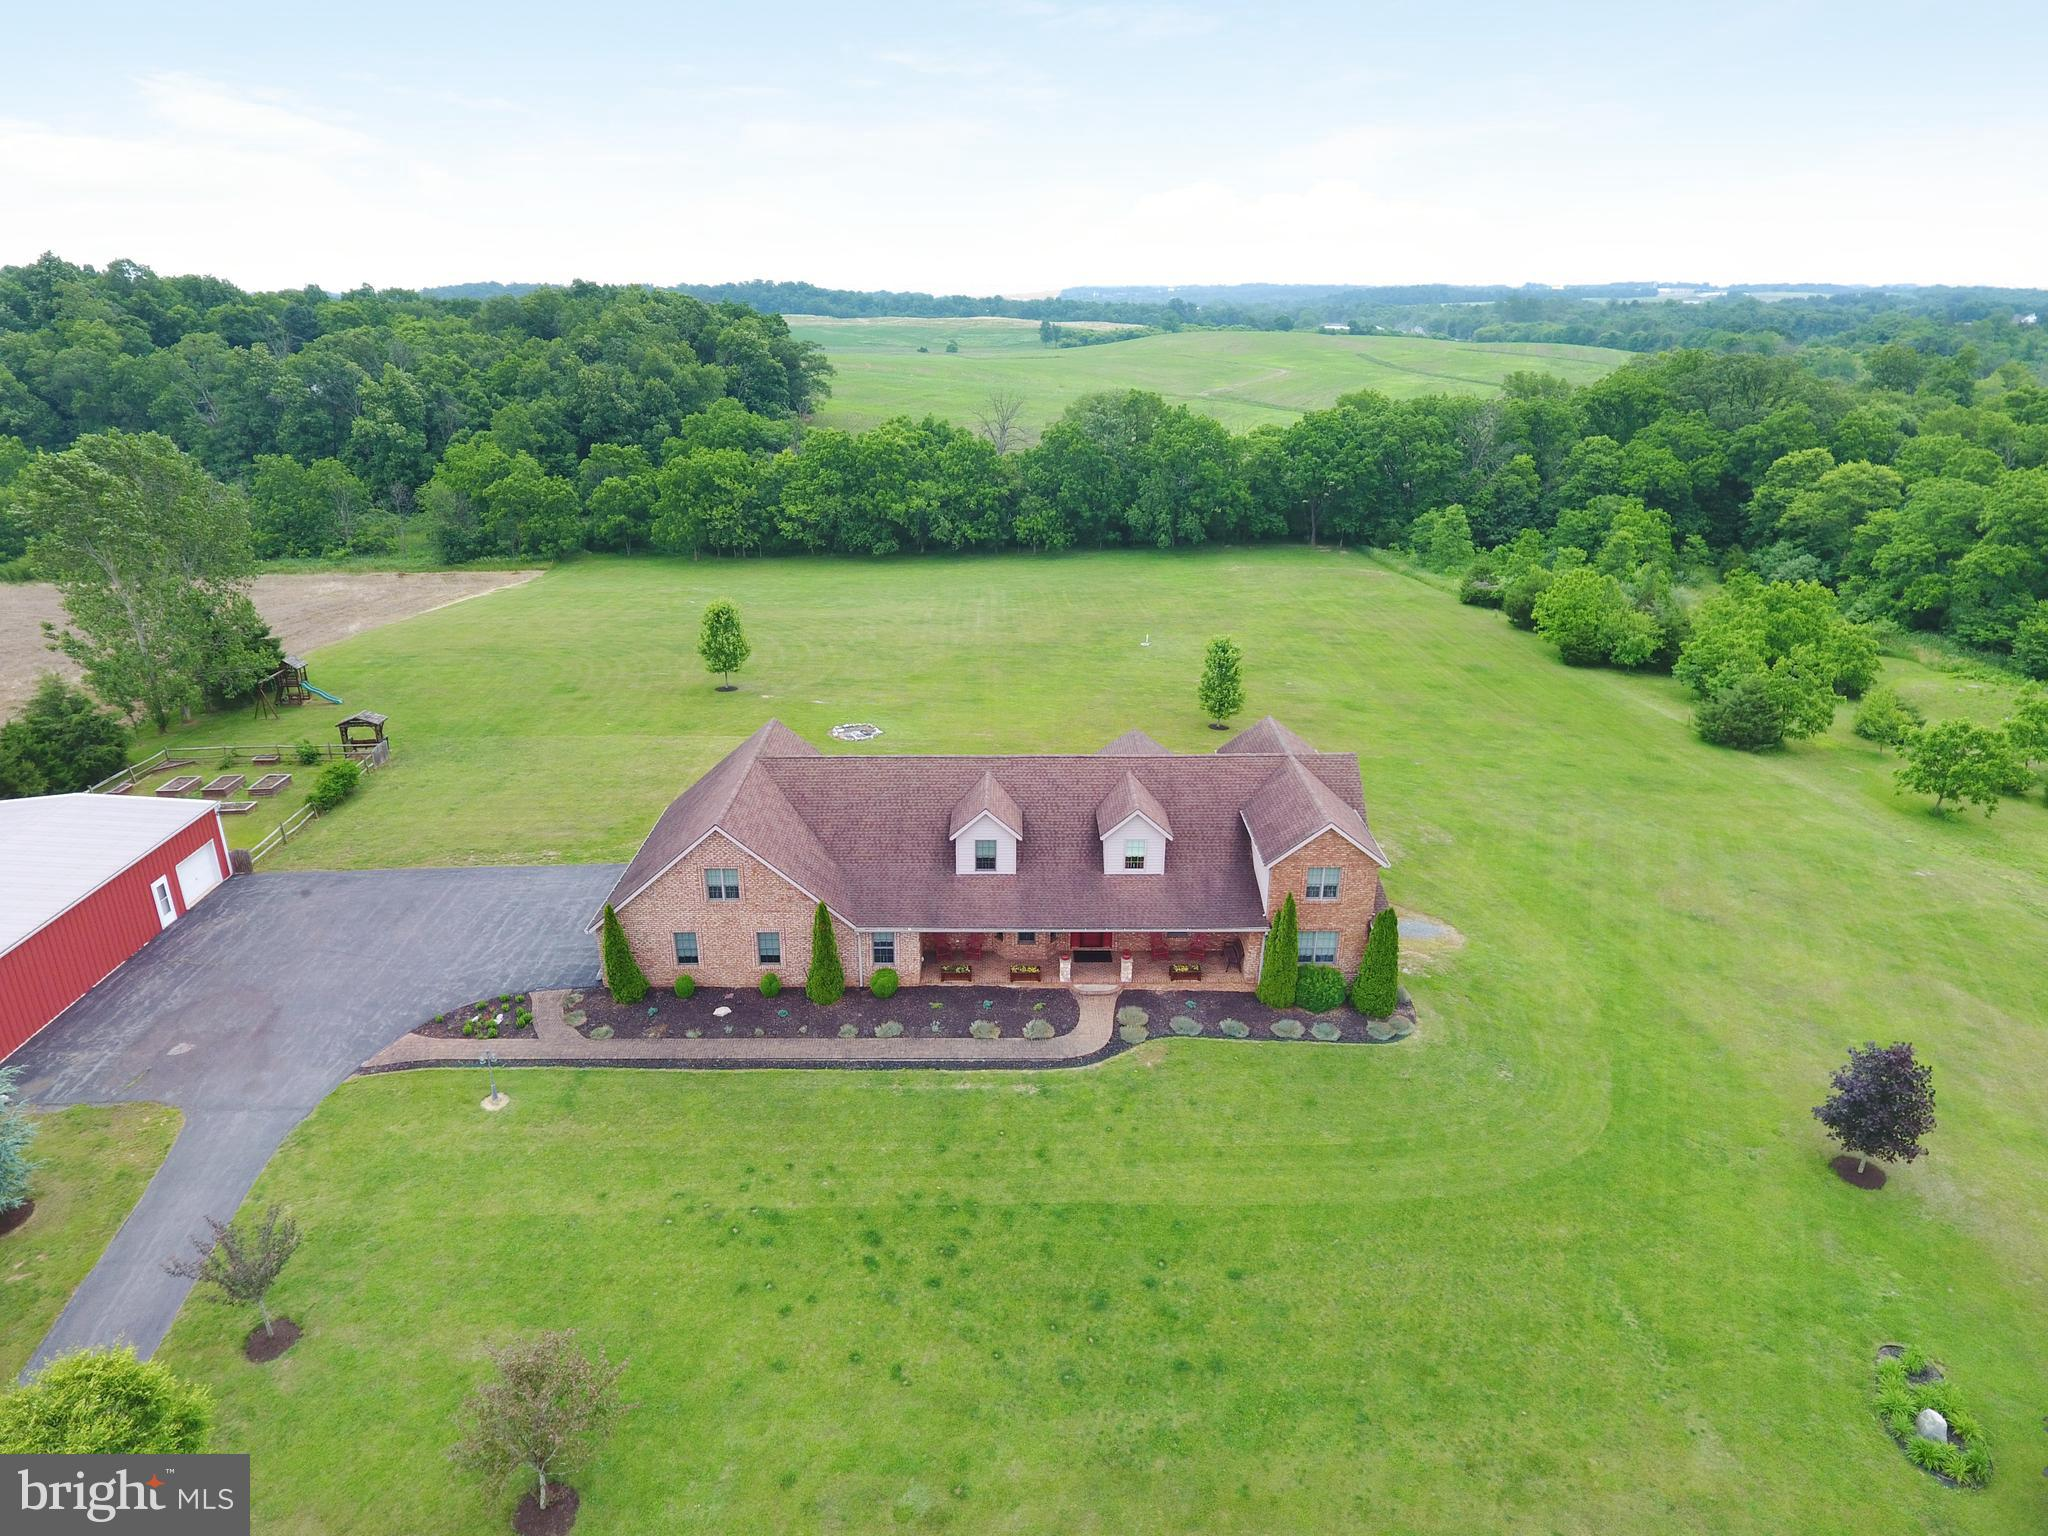 4884 ROCKDALE ROAD, GREENCASTLE, PA 17225